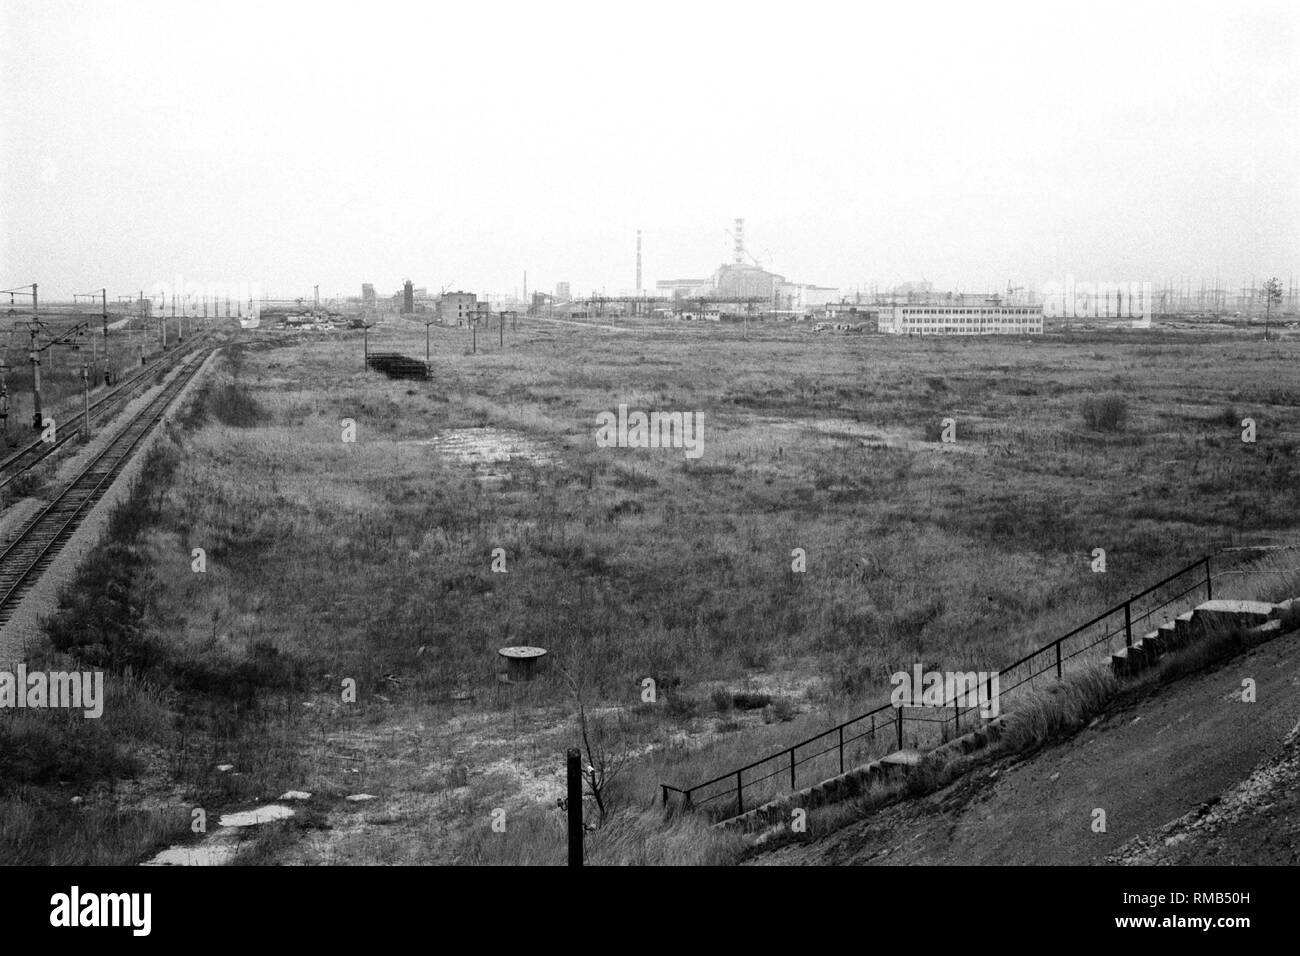 Radiated landscape in the 30 km restricted zone, in the background the Chernobyl disaster reactor in the concrete sarcophagus. - Stock Image